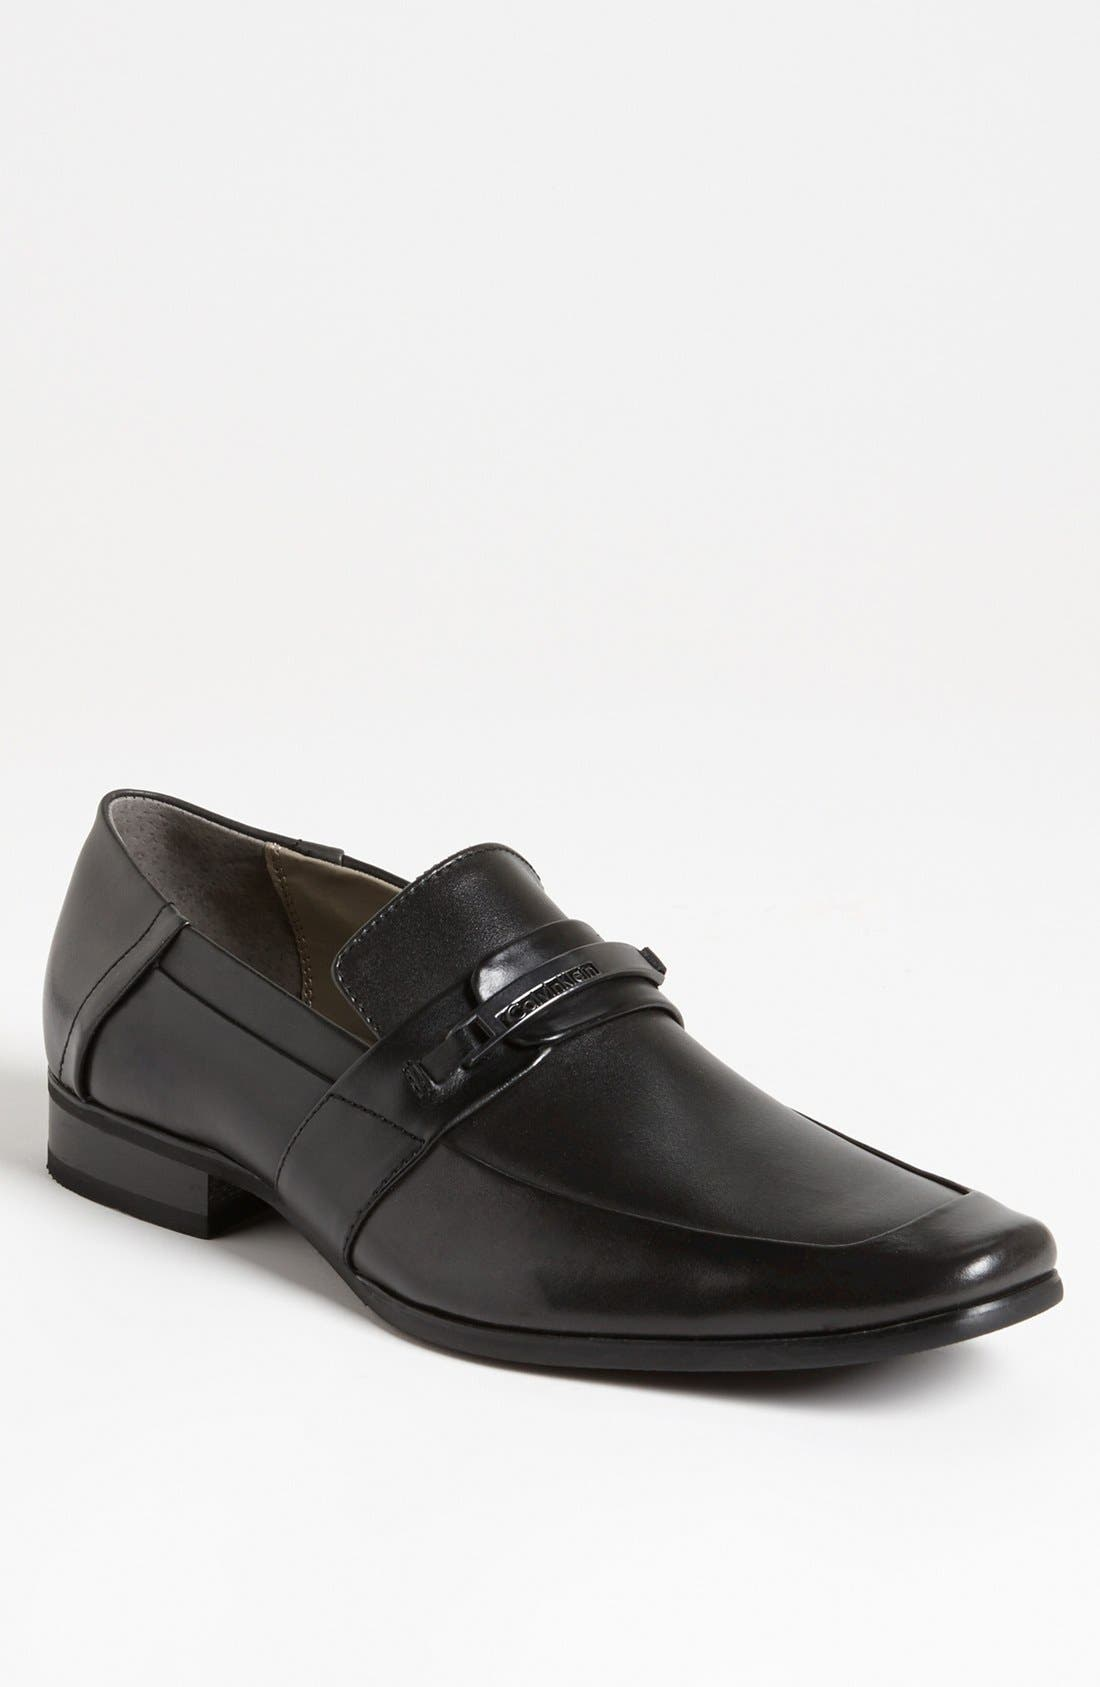 Alternate Image 1 Selected - Calvin Klein 'Brice' Bit Loafer